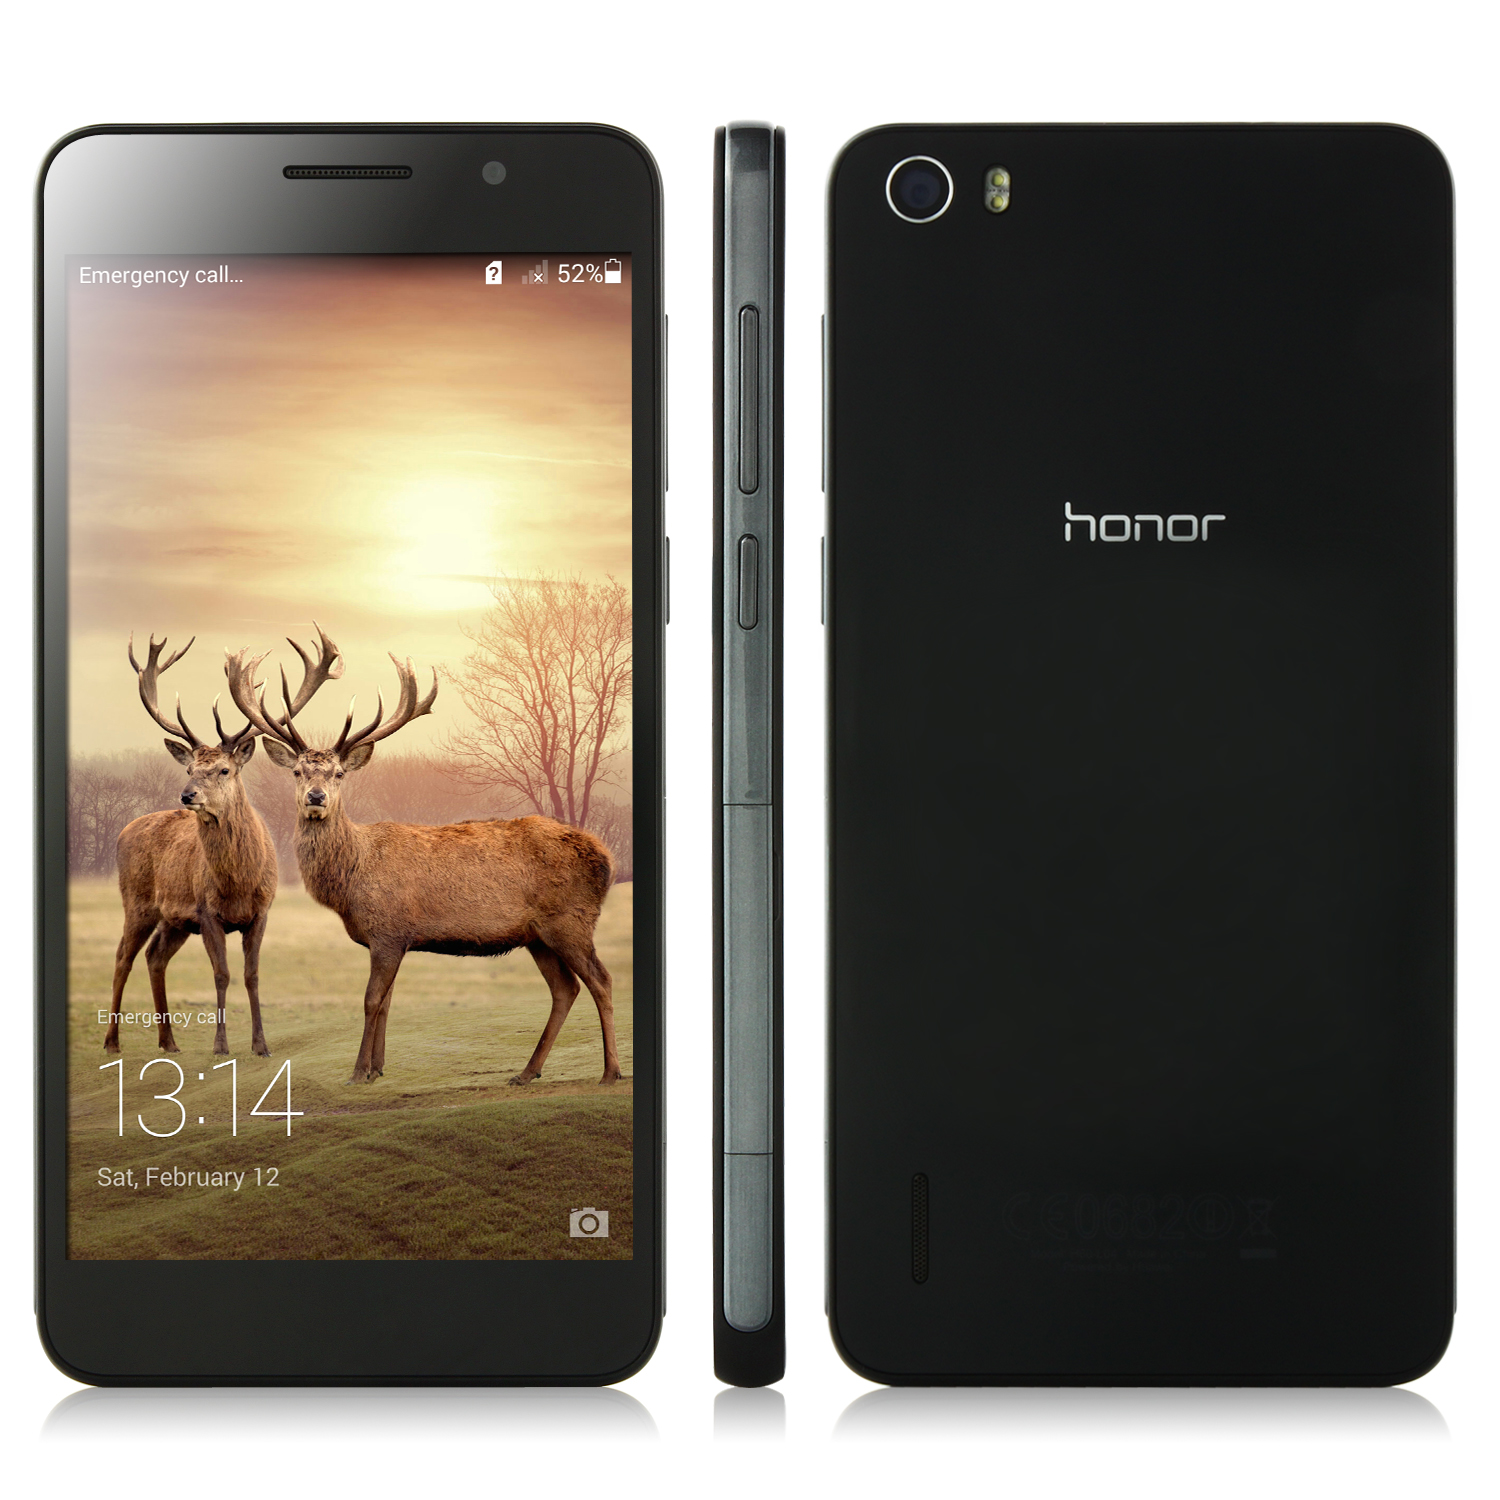 HUAWEI Honor 6 Smartphone L-04 4G LTE Hisilicon Octa Core 3GB 16GB 5.0 Inch FHD Screen